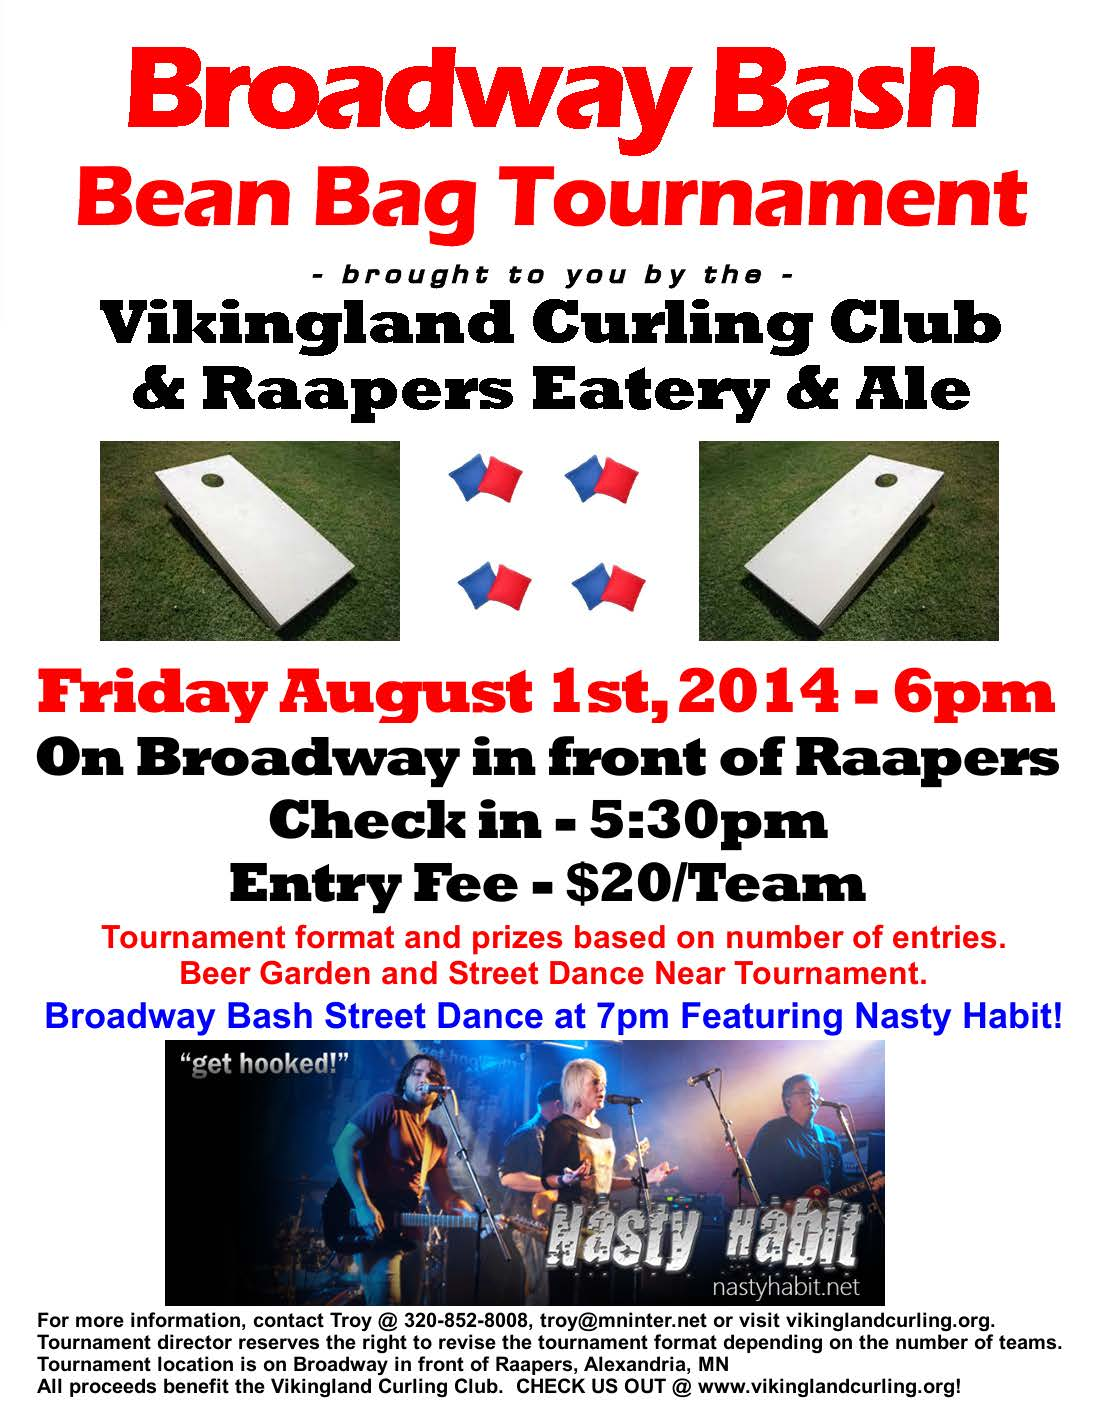 2014 VCC Broadway Bash Bean Bag Tourney Aug 1st